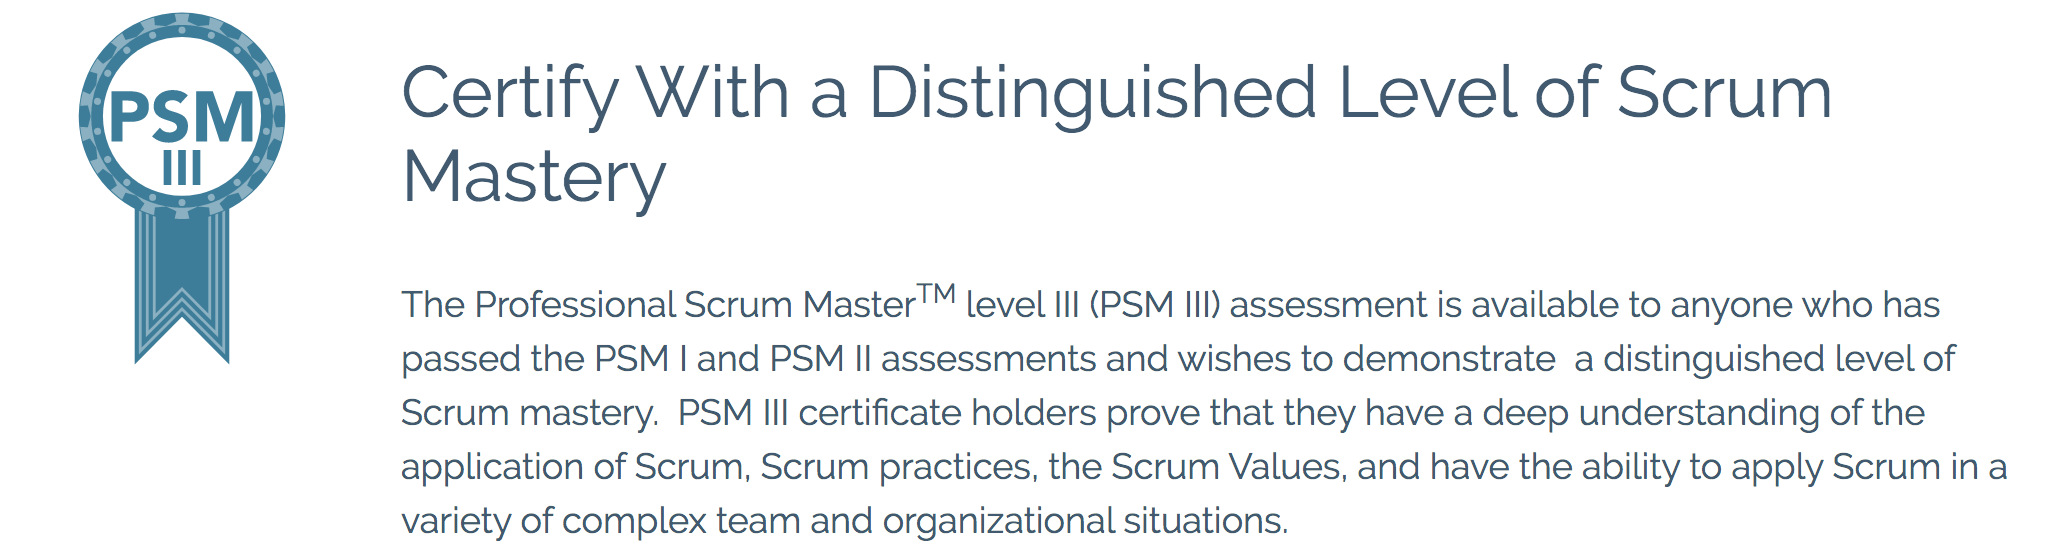 PSM III?—?Distinguished Level of Scrum Mastery